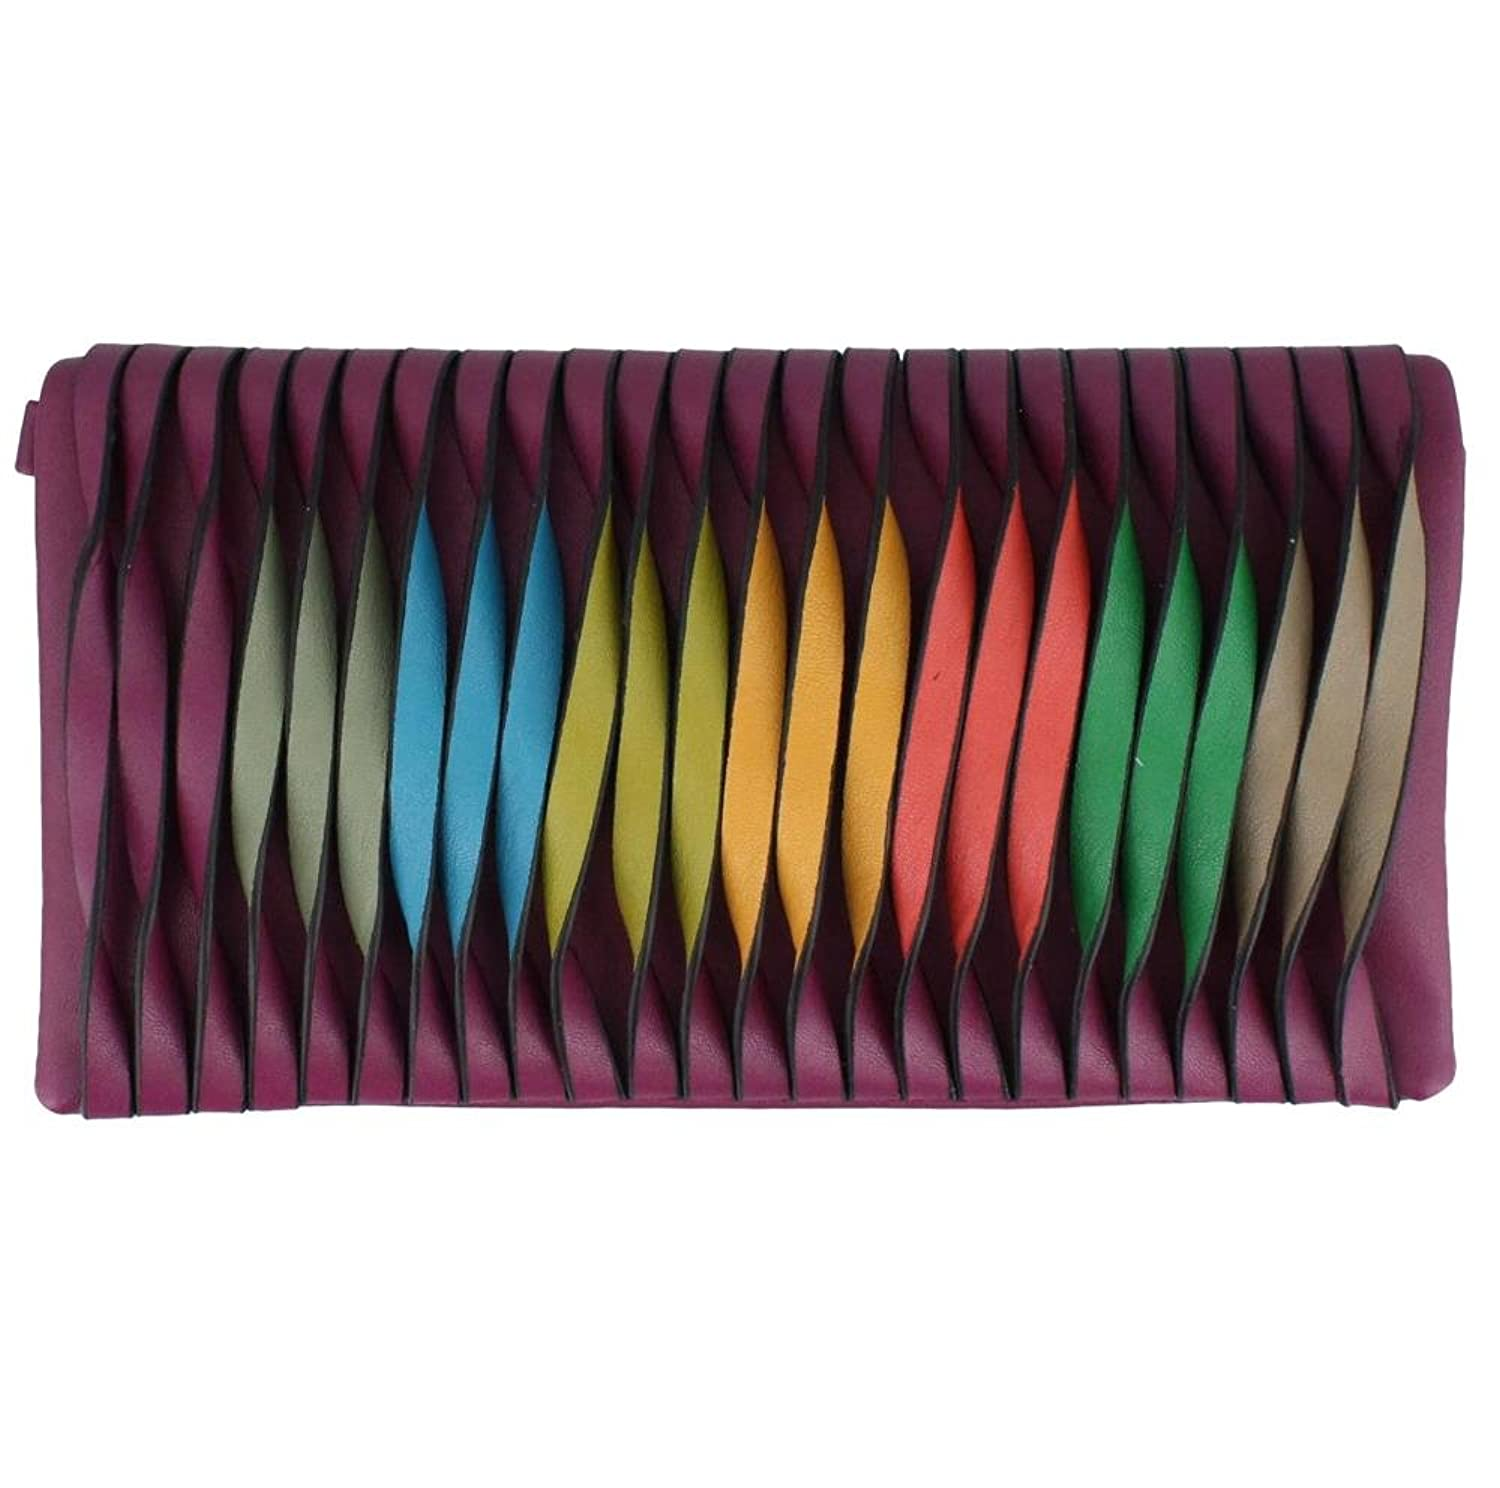 Women's Mellow World Handbags, Rainbow Wristlet